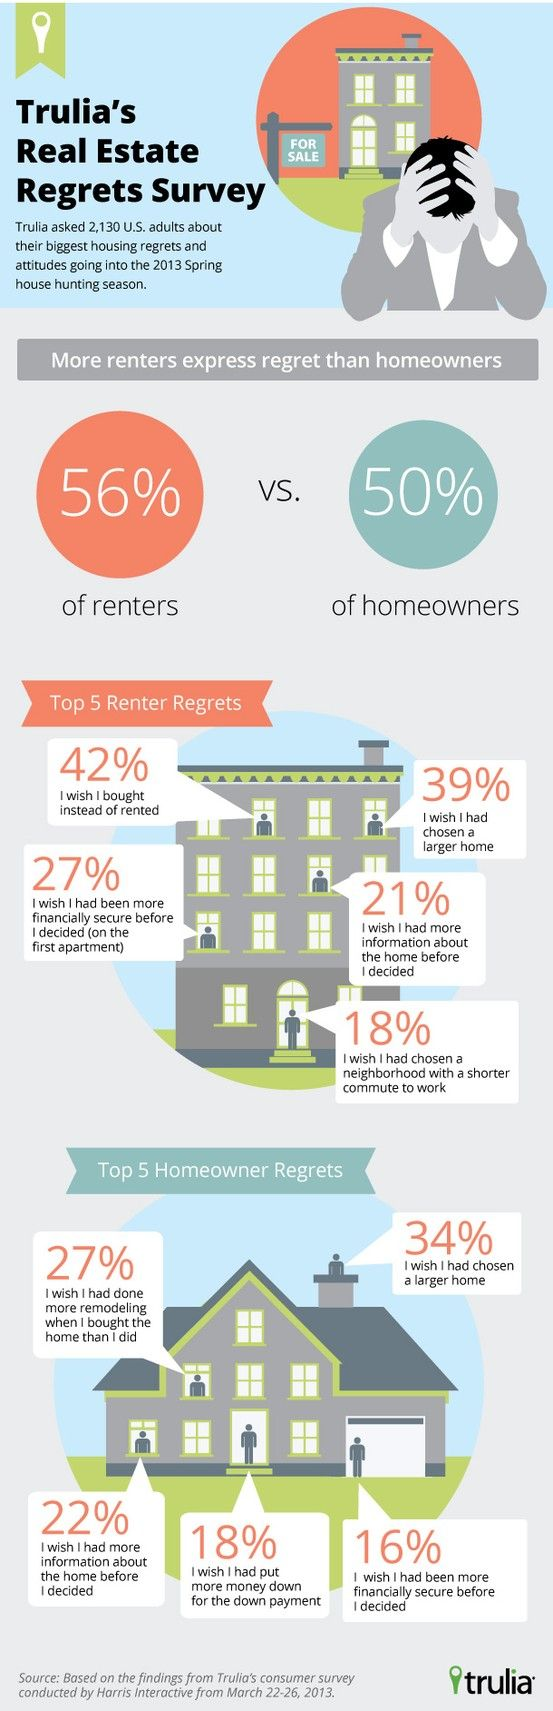 Trulia's Real Estate Regrets Survey - This might help you make your next decision when you are ready to buy a home! #realestate #regrets